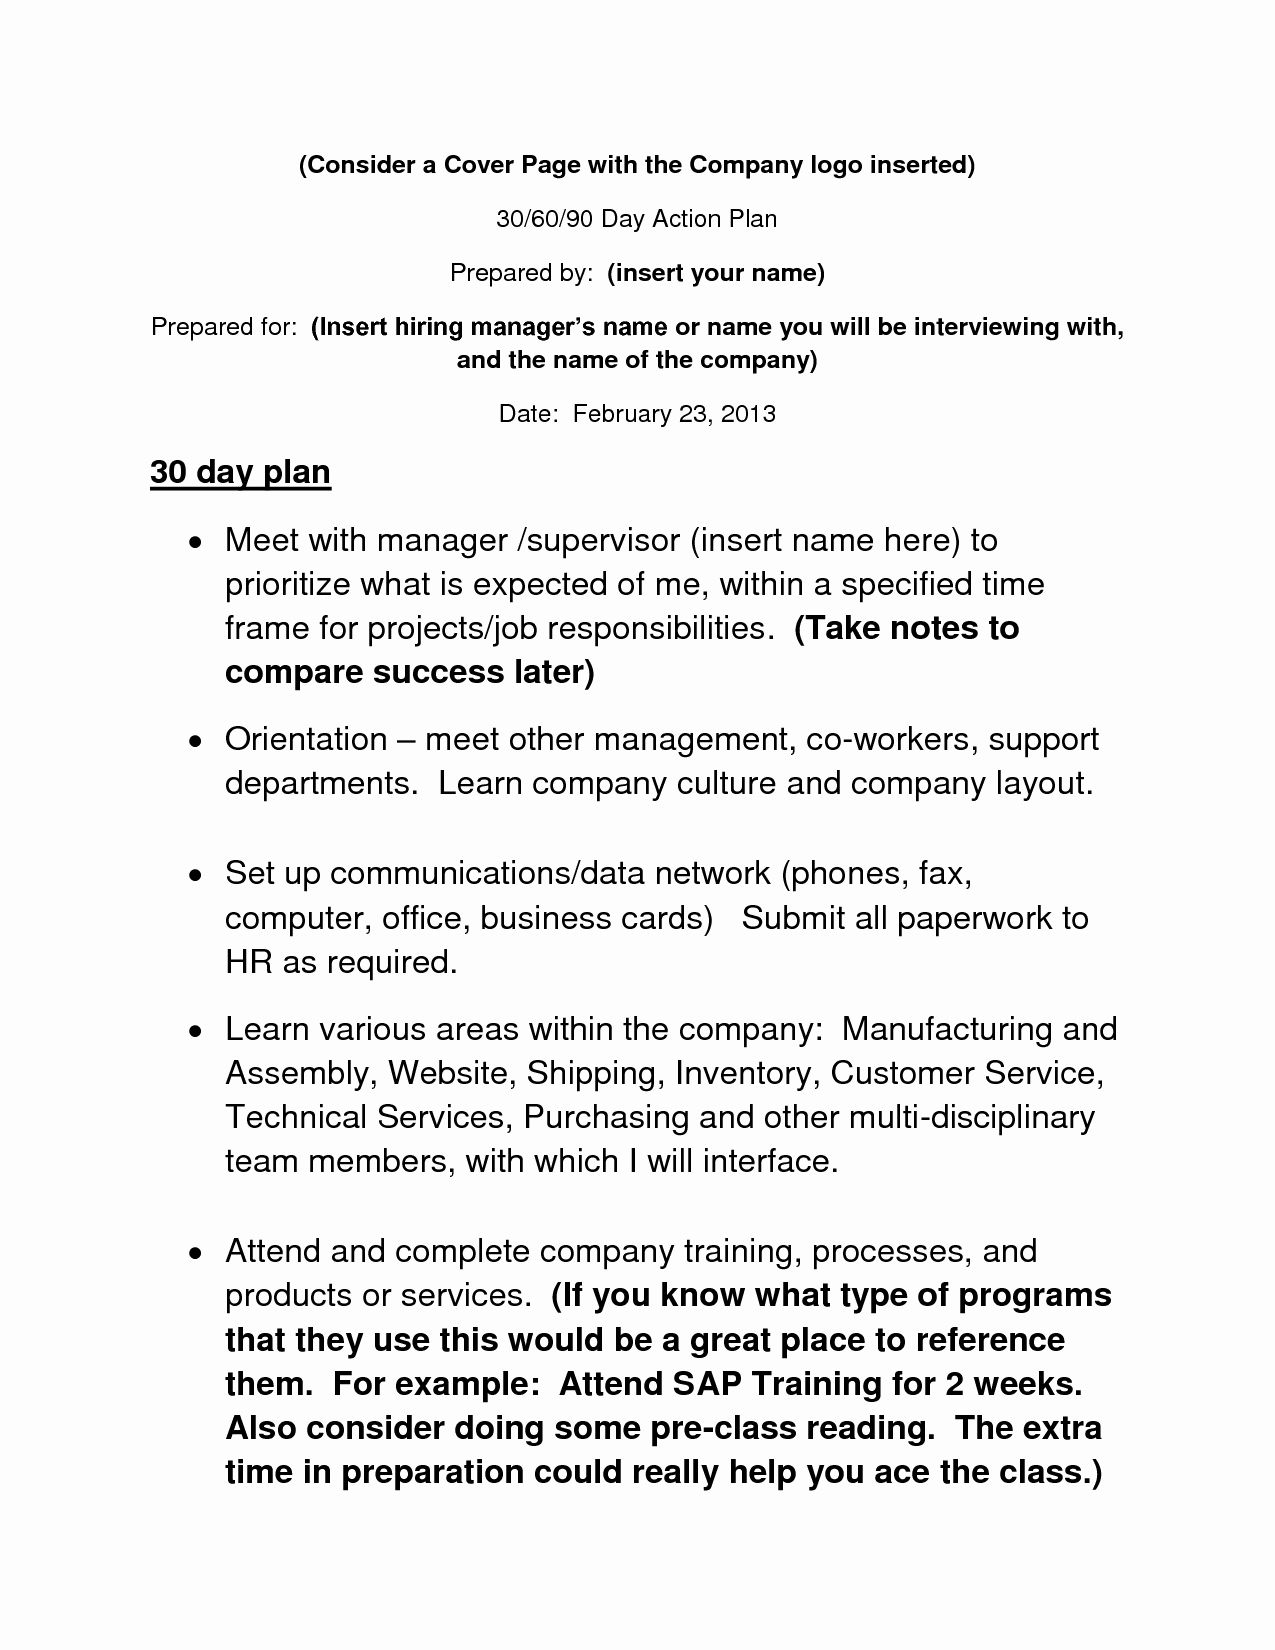 30 60 90 Business Plan Luxury 30 60 90 Day Action Plan Template Info